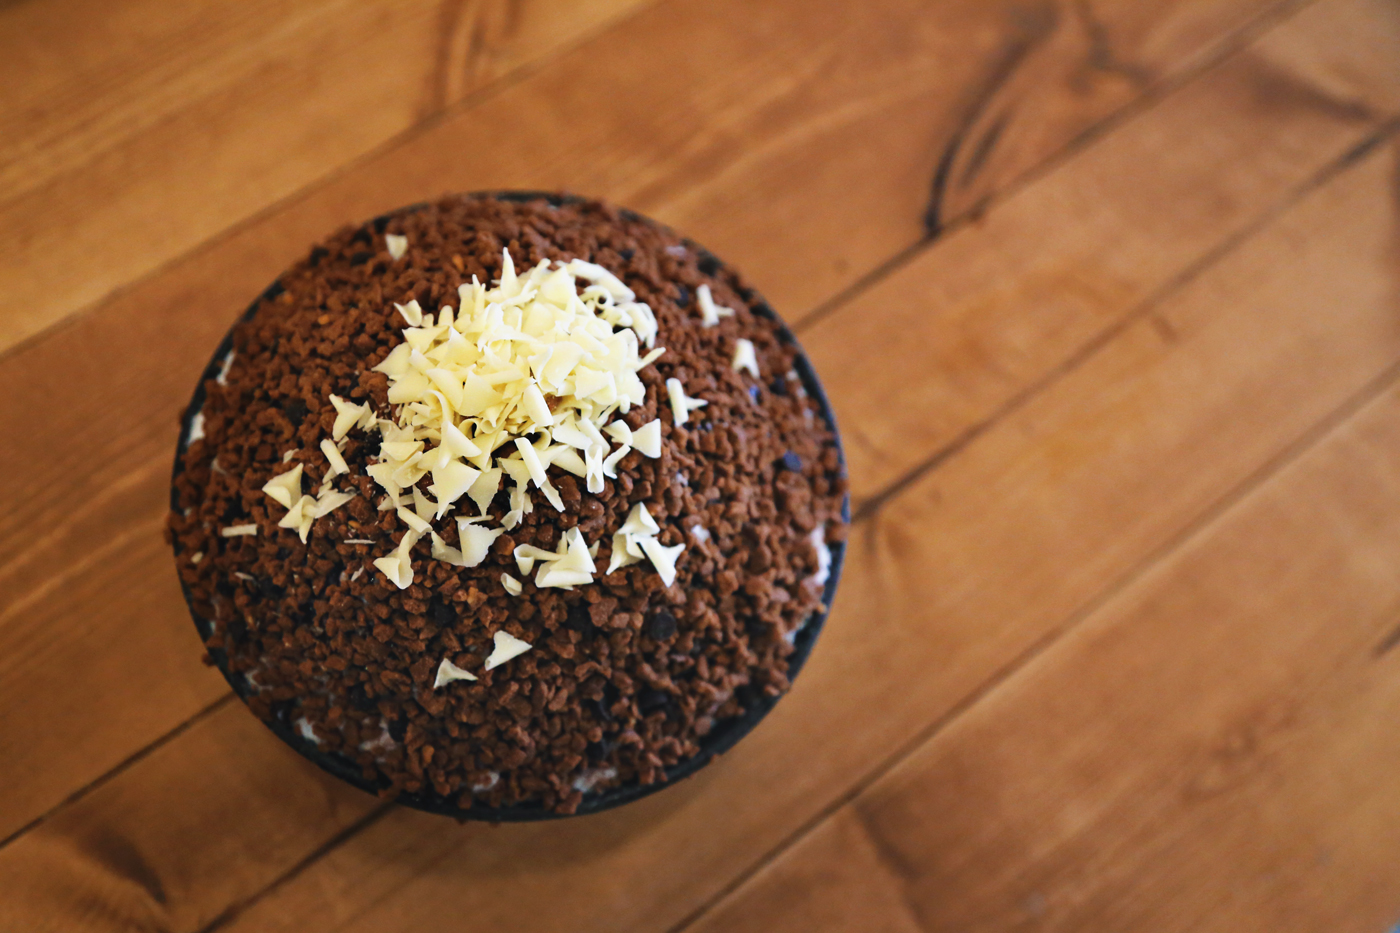 Patmiok's (팥미옥) version of chocolate snowflake bingsu (초코 눈꽃빙수).